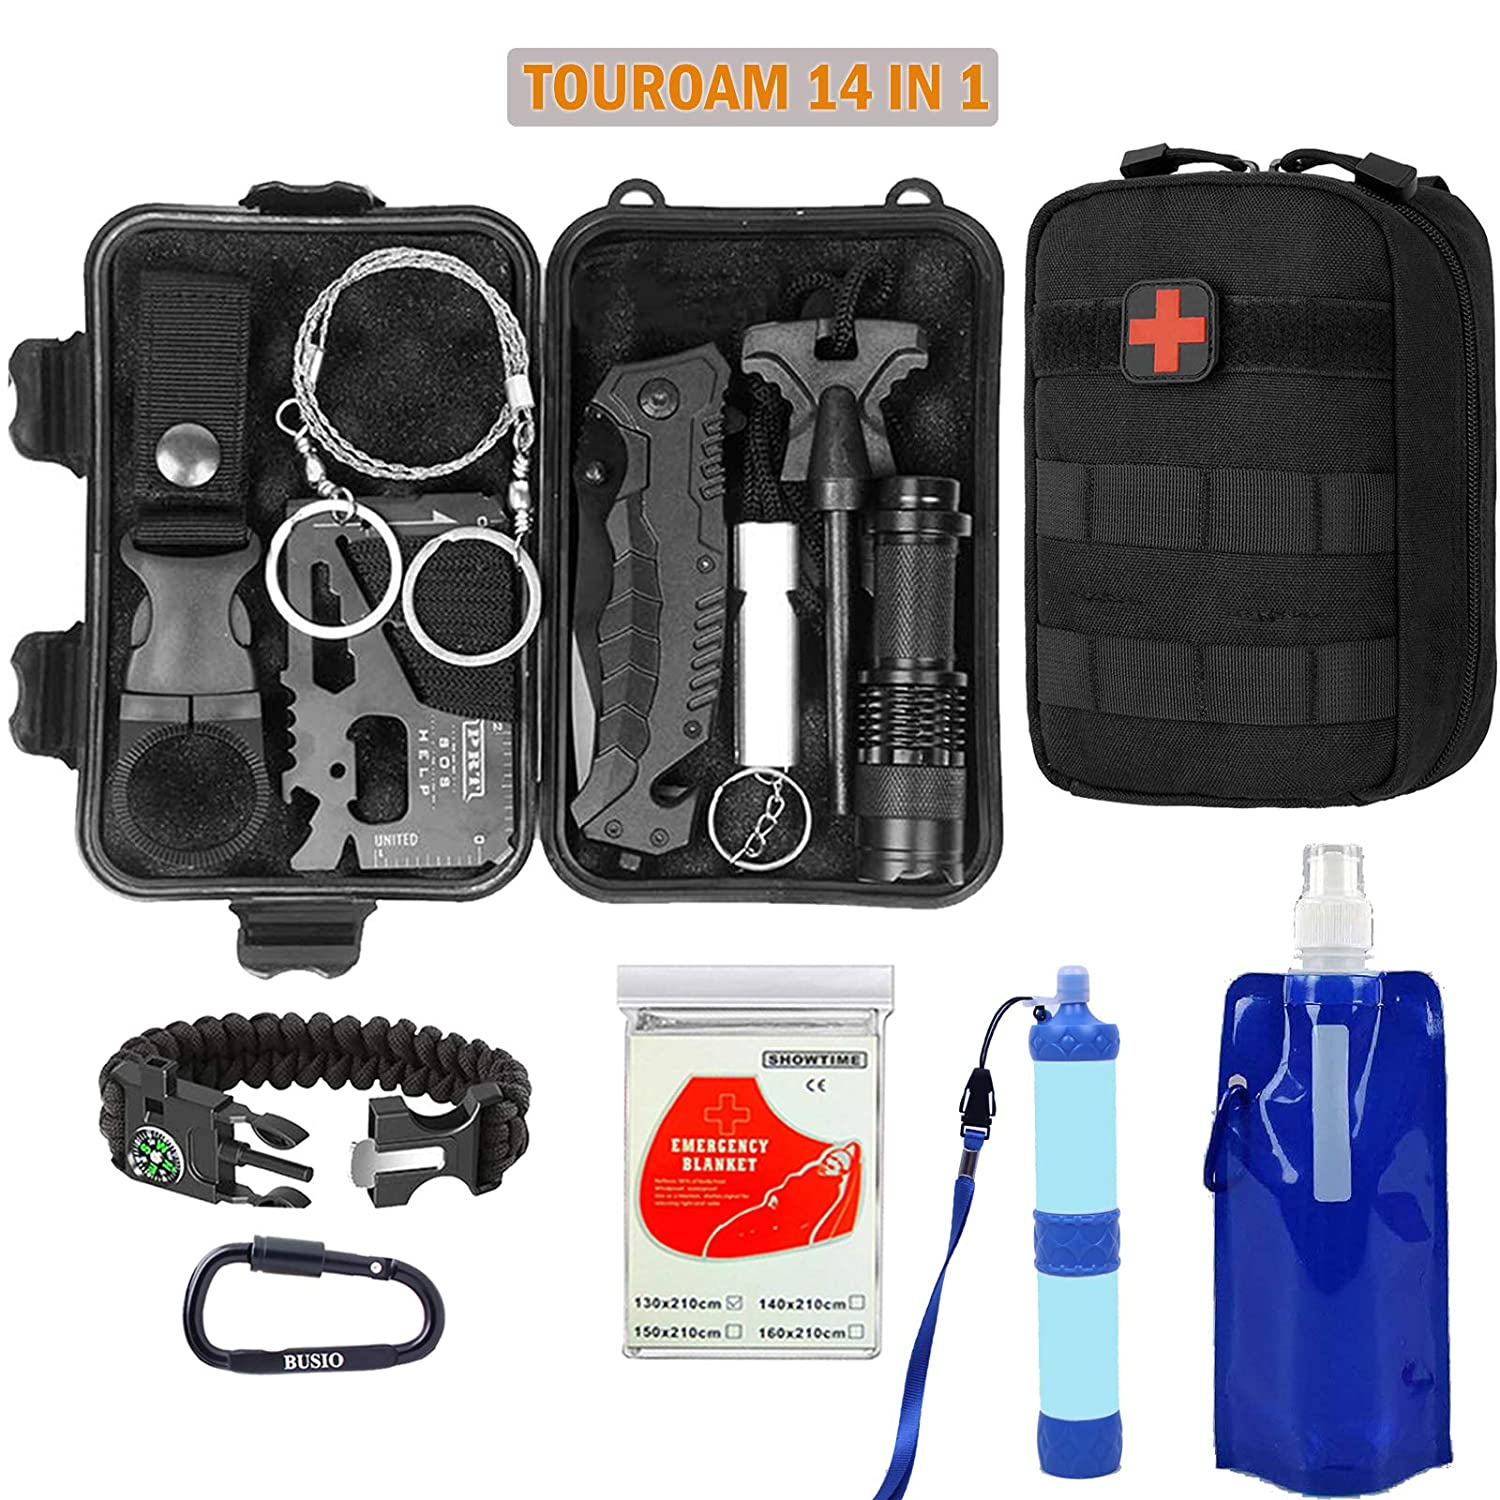 Tactical IFAK,MOLLE Admin Pouch-Mylar Blanket-5 In 1 Bracelet and Military Multitool Kit SOS First Aid Emergency Kit TOUROAM Adventure Survival Kit